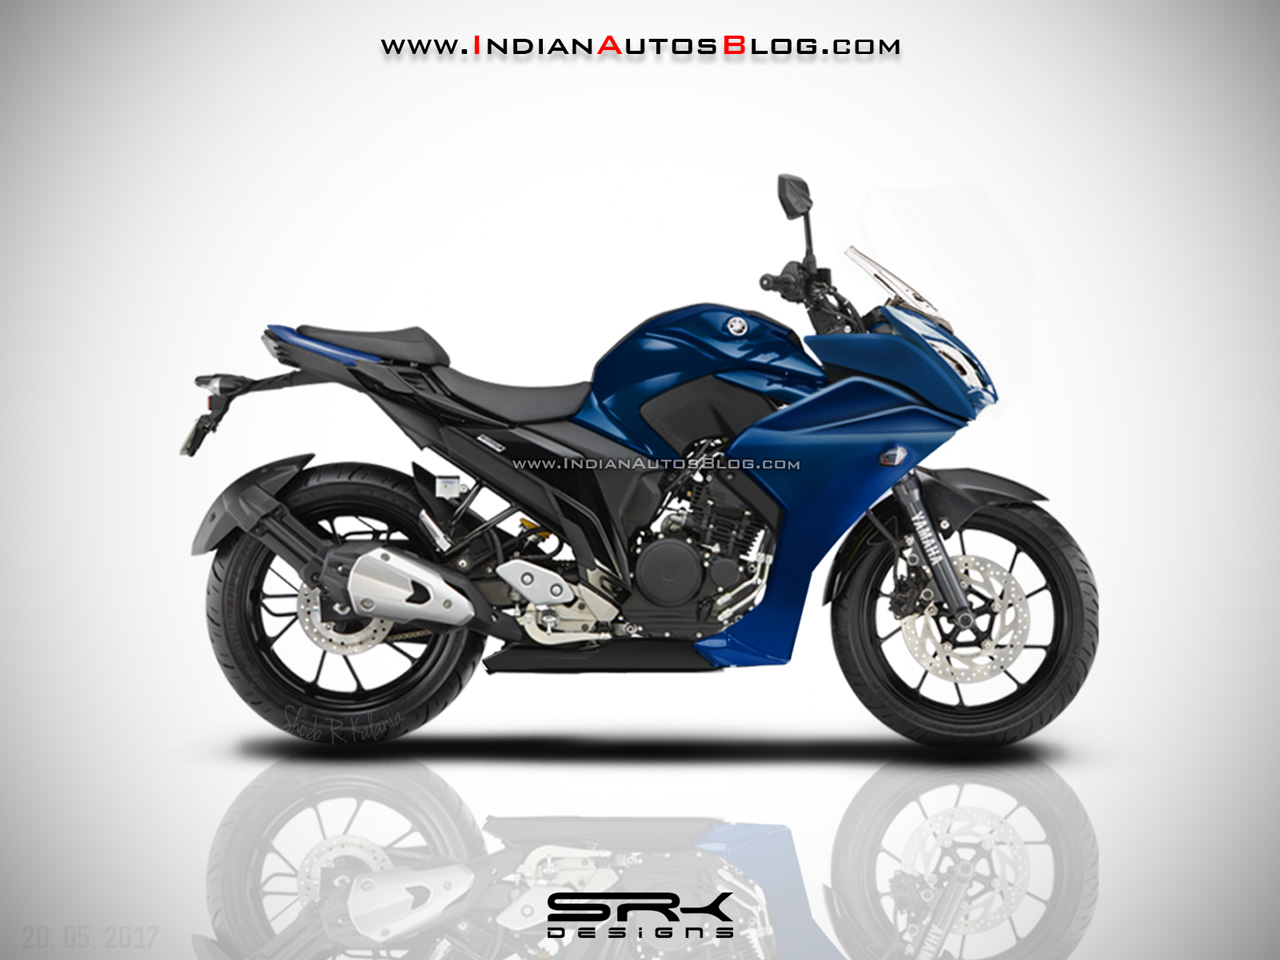 Yamaha Fazer 250 production to begin by August 2017